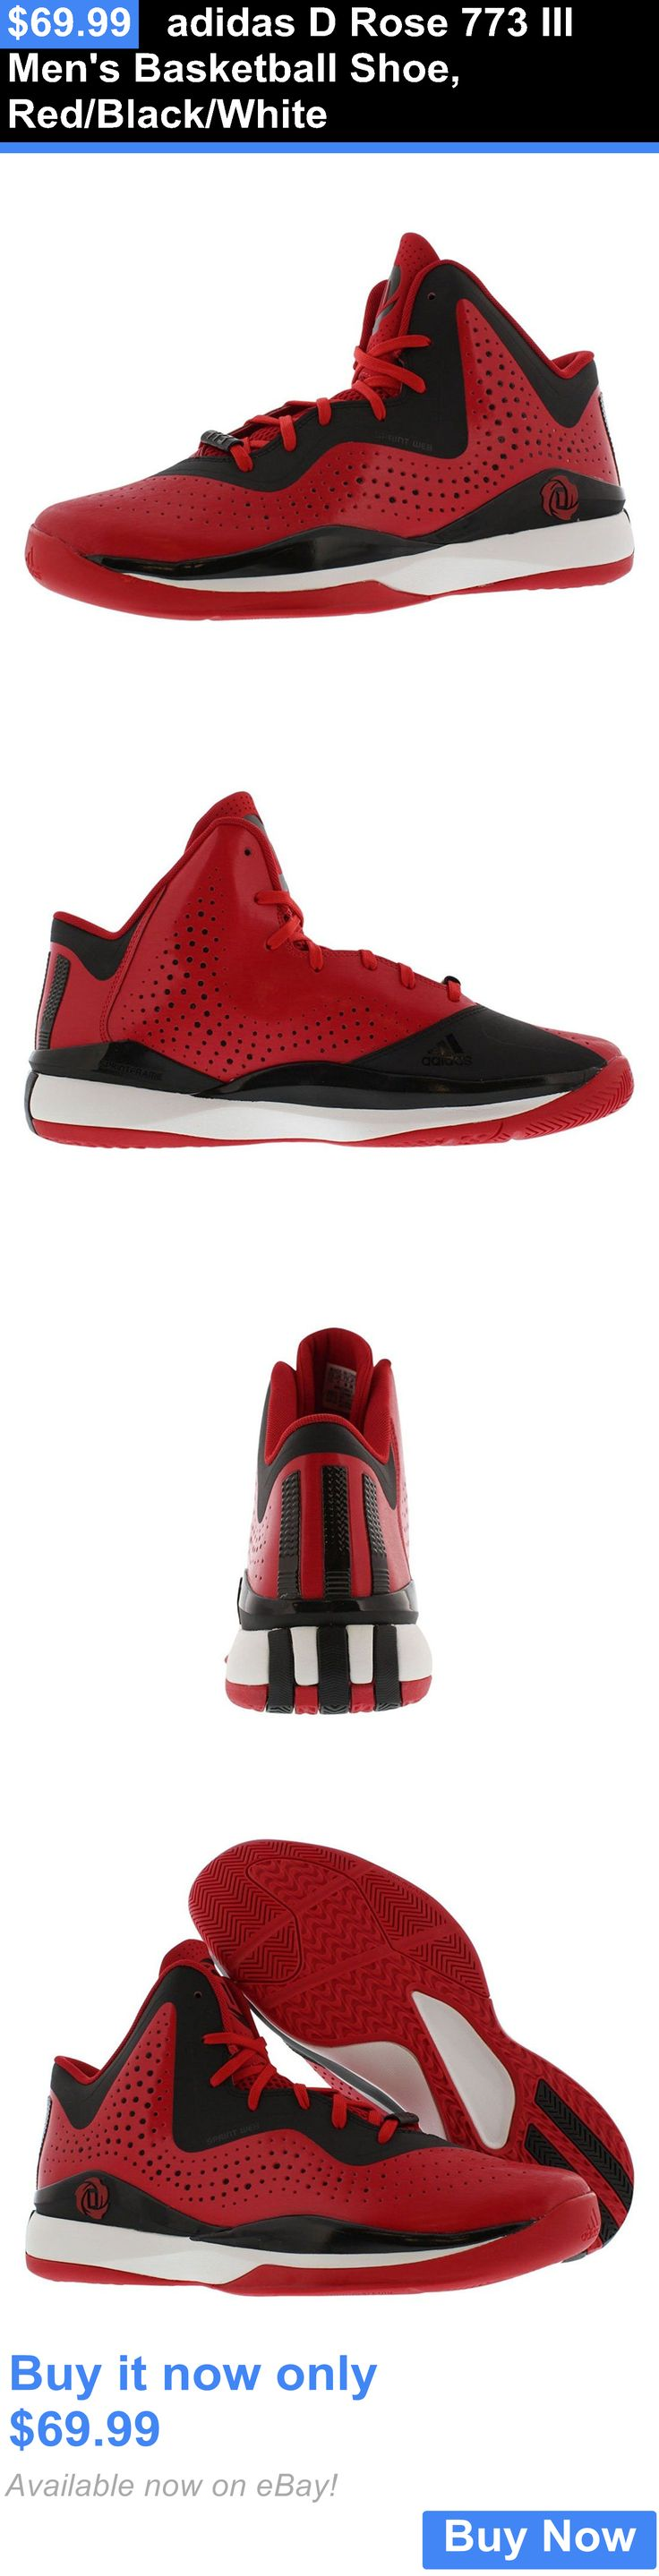 Basketball: Adidas D Rose 773 Iii Mens Basketball Shoe, Red/Black/White BUY IT NOW ONLY: $69.99